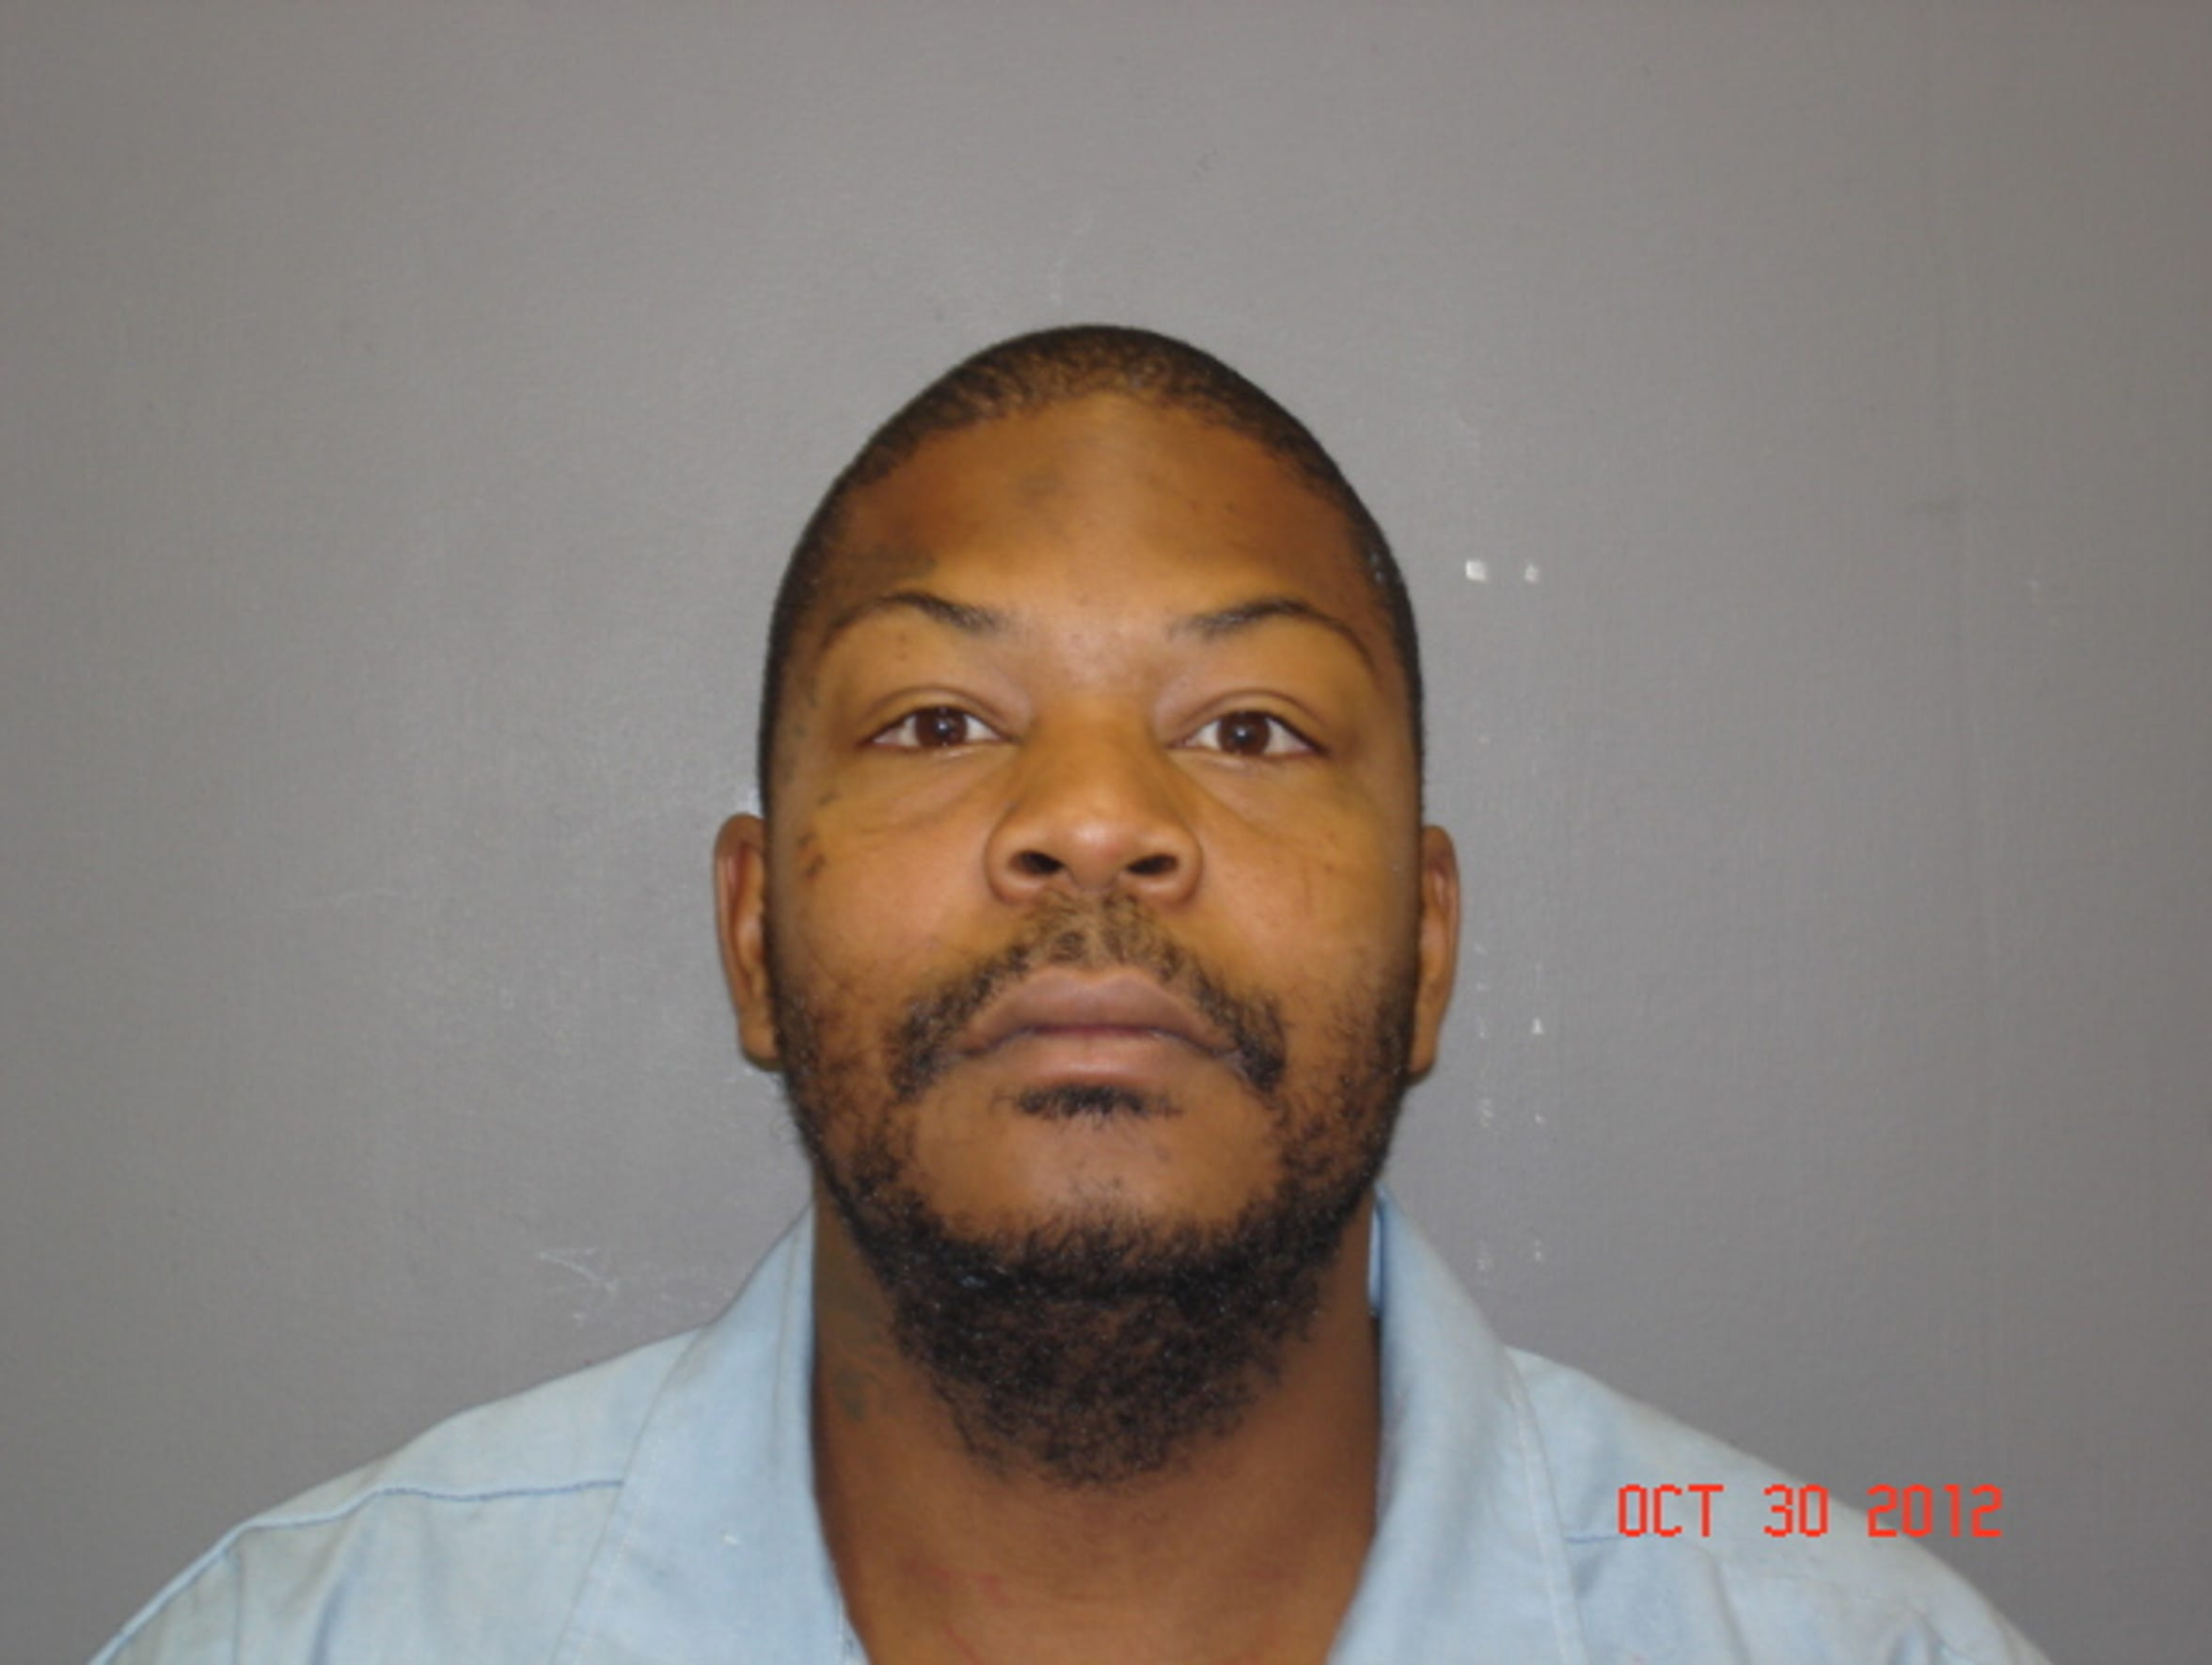 Rojai  Fentress, in a 2012 photo. Fentress was sentenced